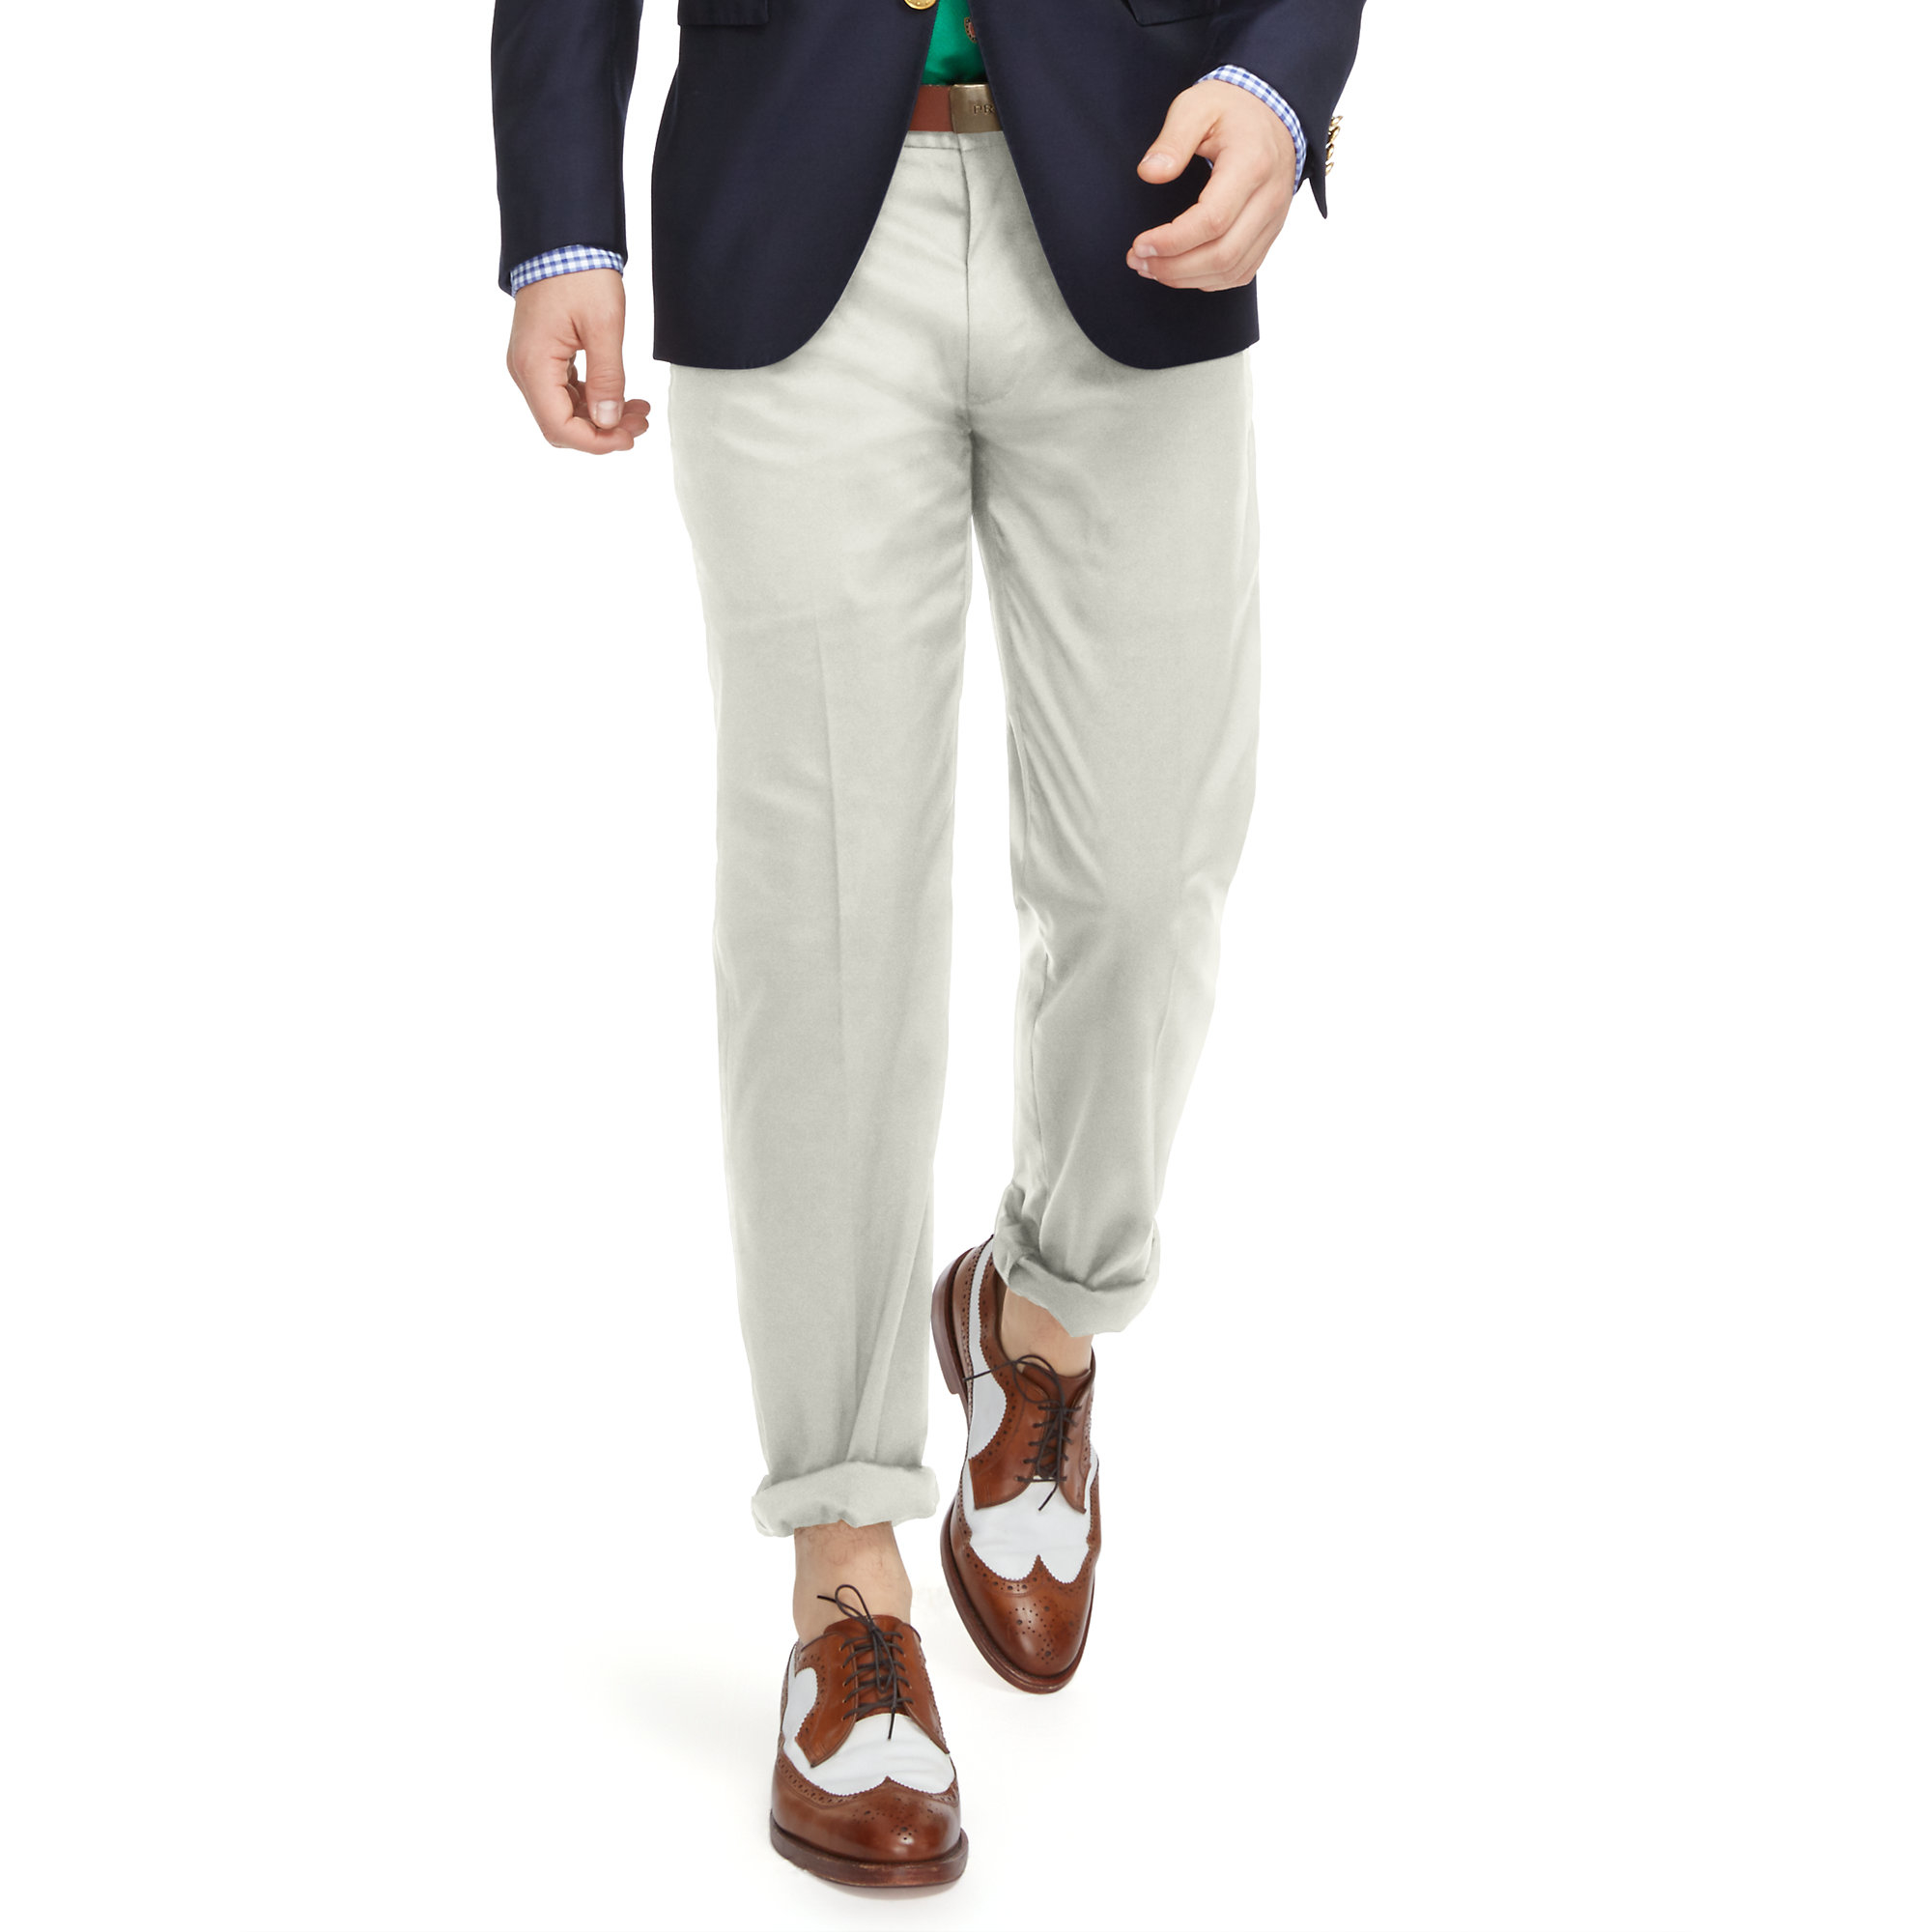 60585b76472 Lyst - Polo Ralph Lauren Stretch Classic Fit Pant in Natural for Men